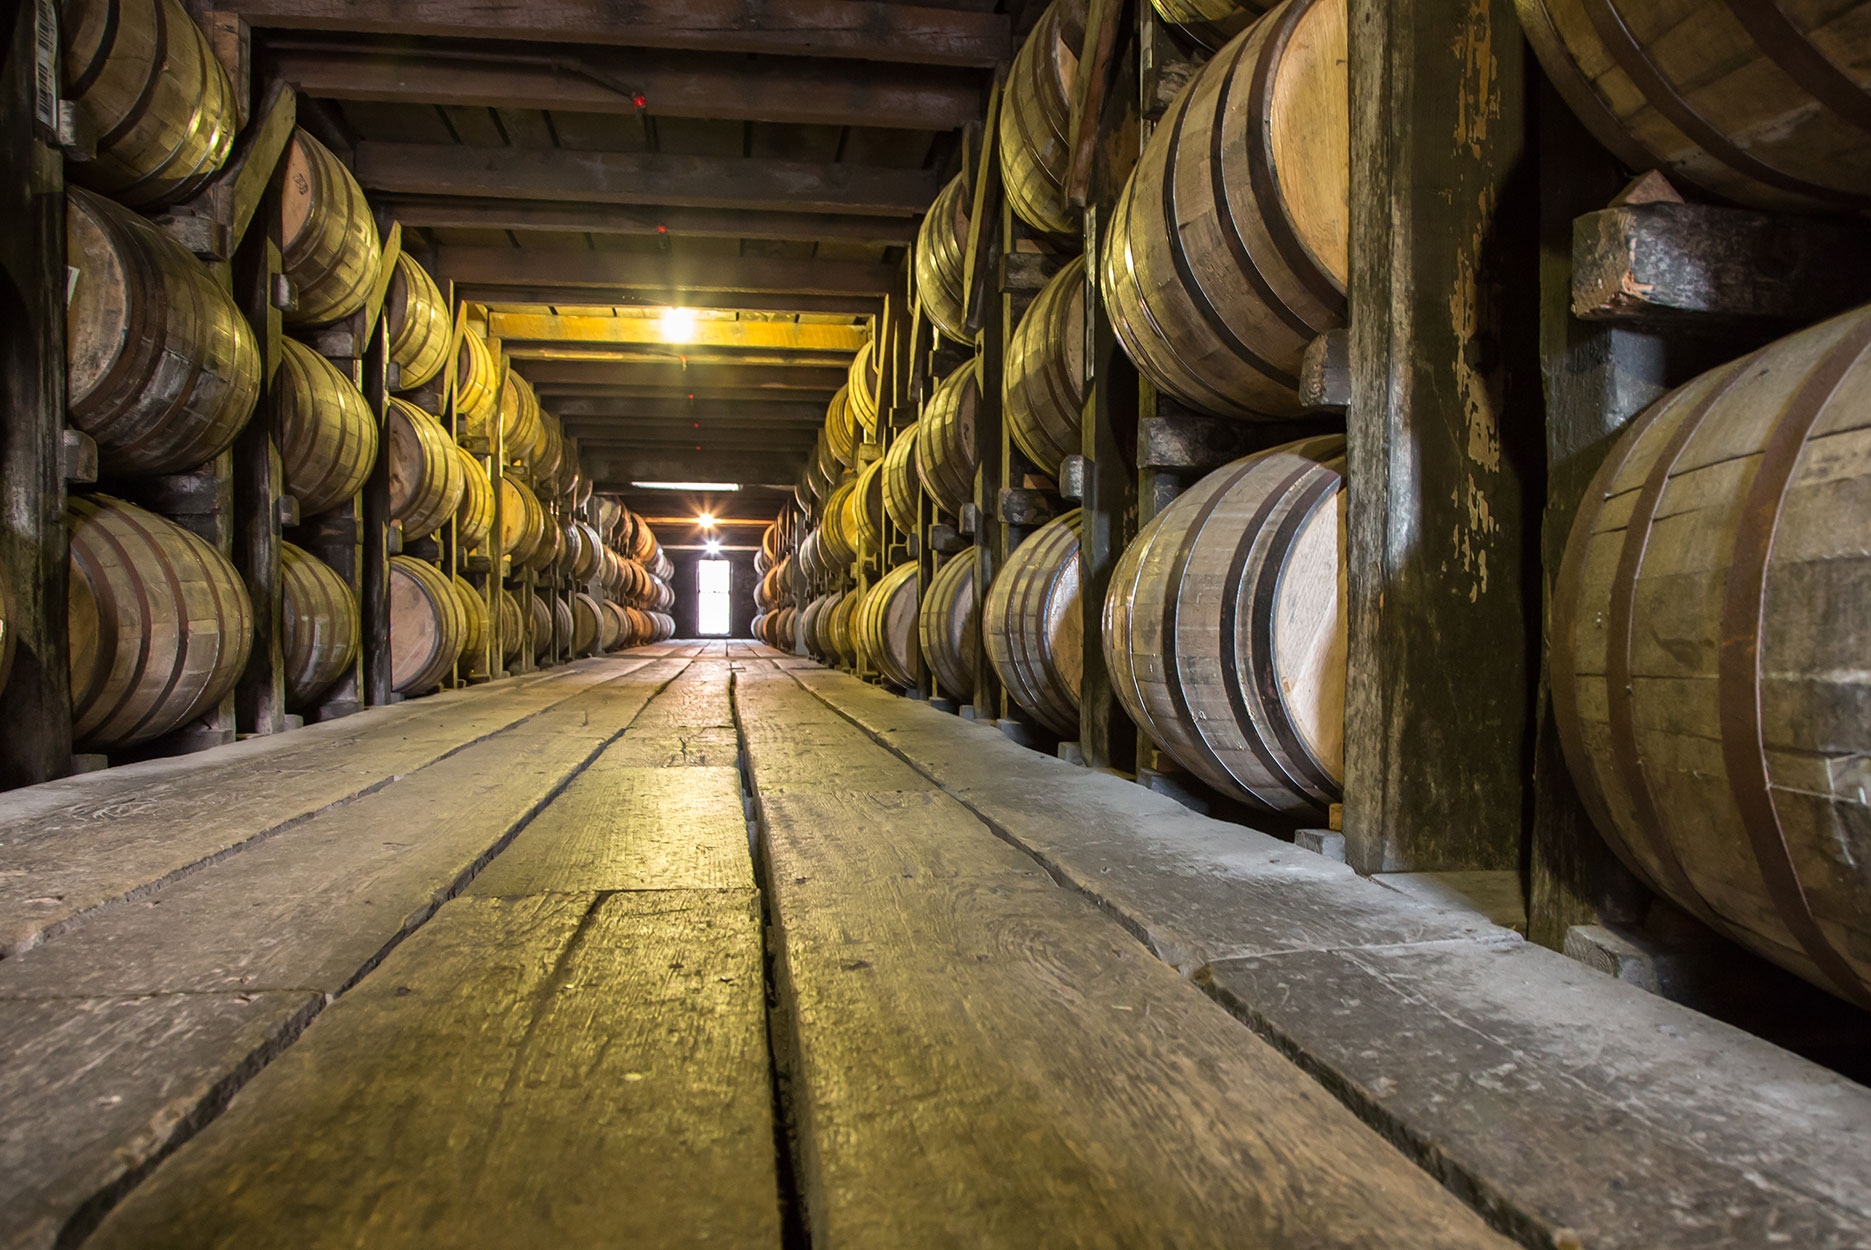 Barrels of whiskey in a cellar